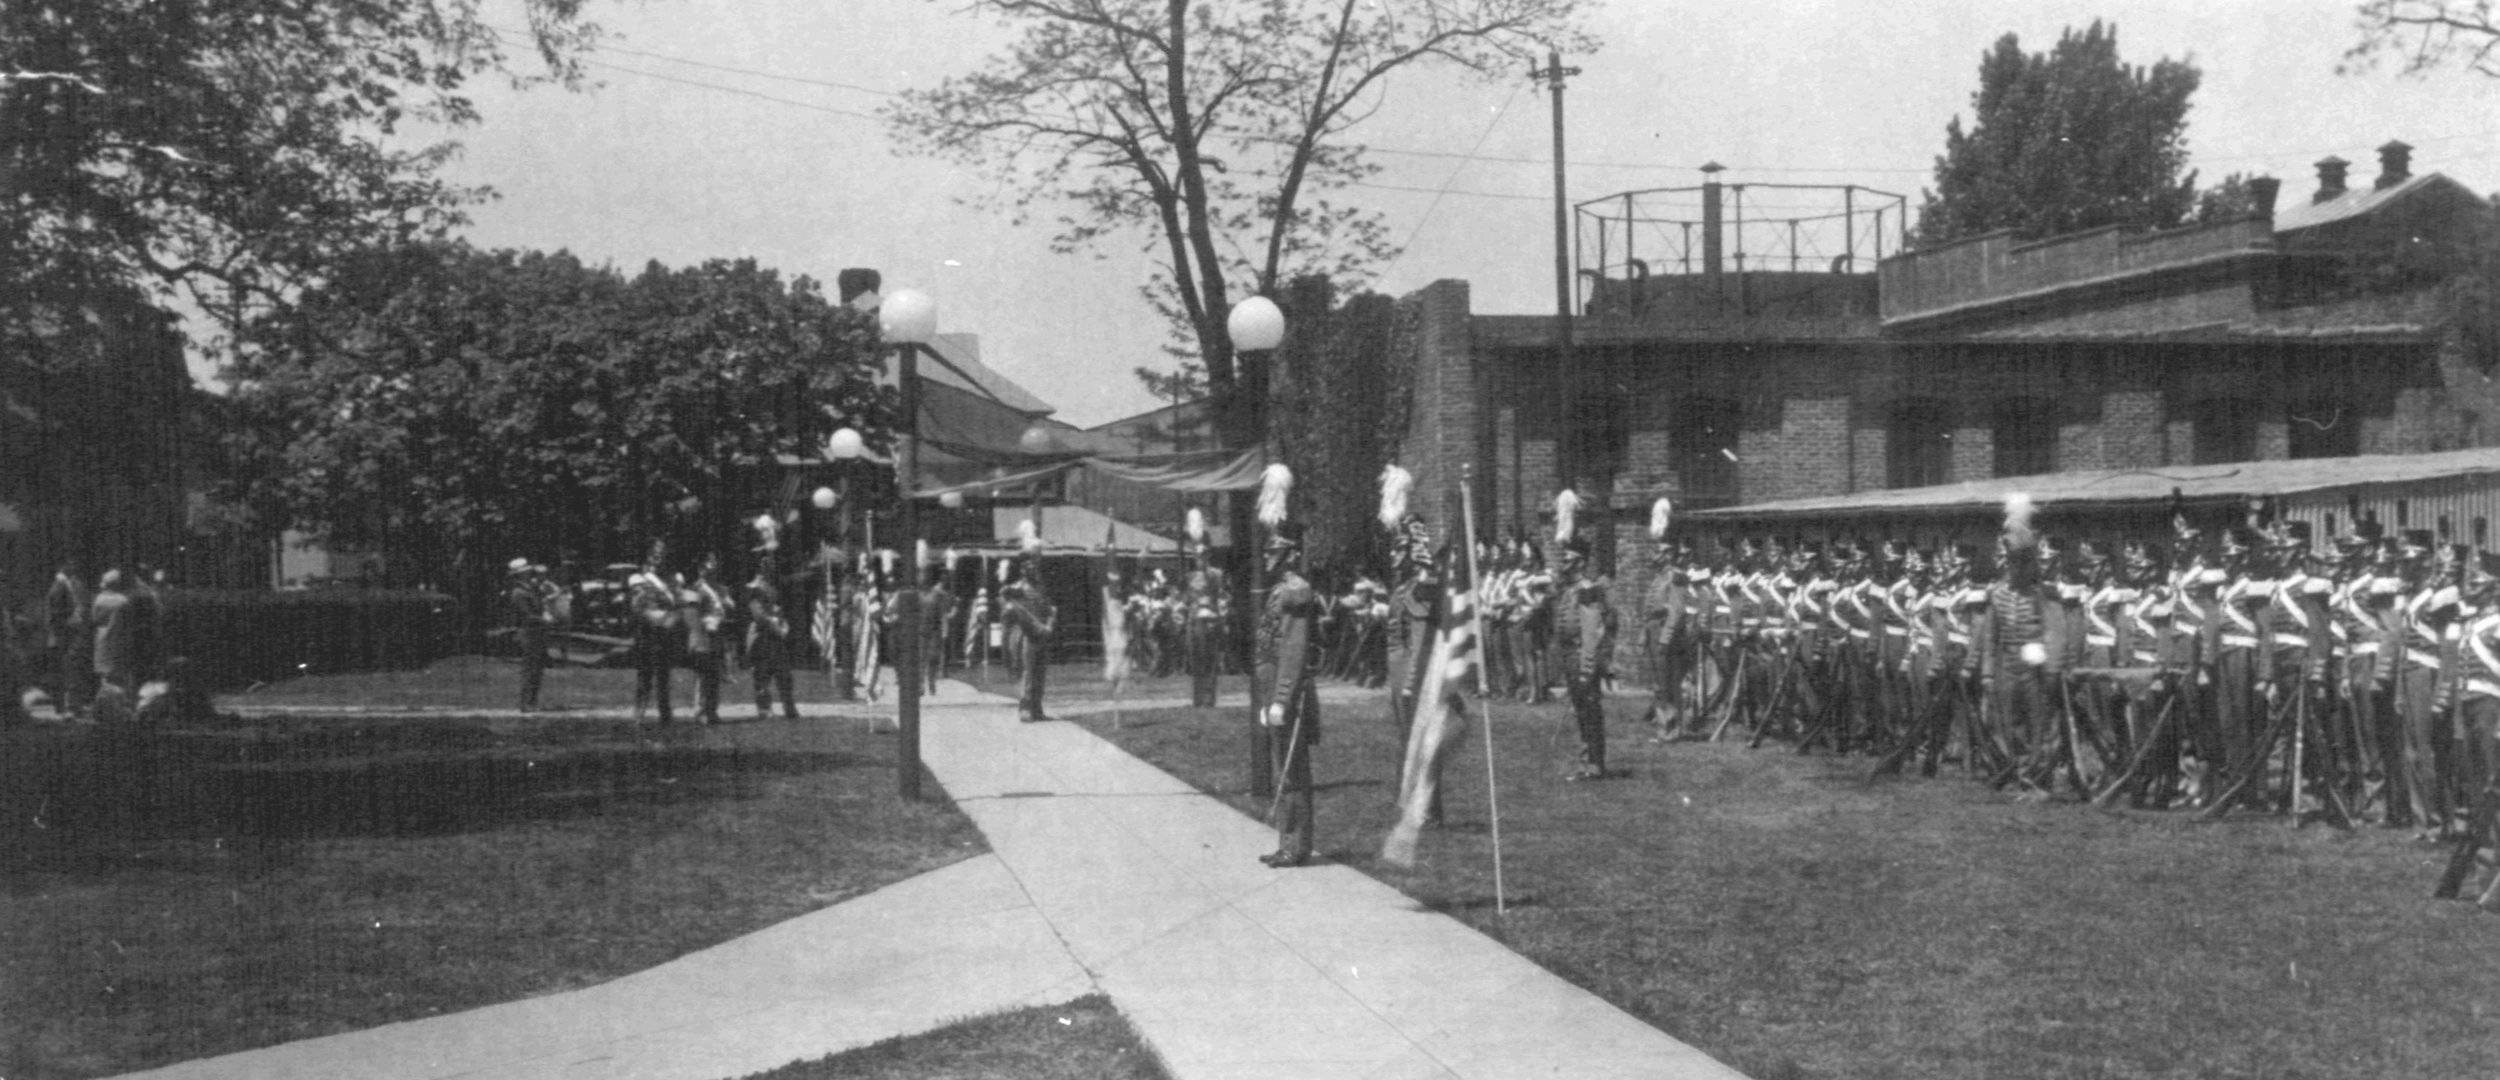 Colonial Day festivities outside Bladen Street Station. Annapolis, Maryland Date: May 15, 1928. Source: Maryland State Archives.